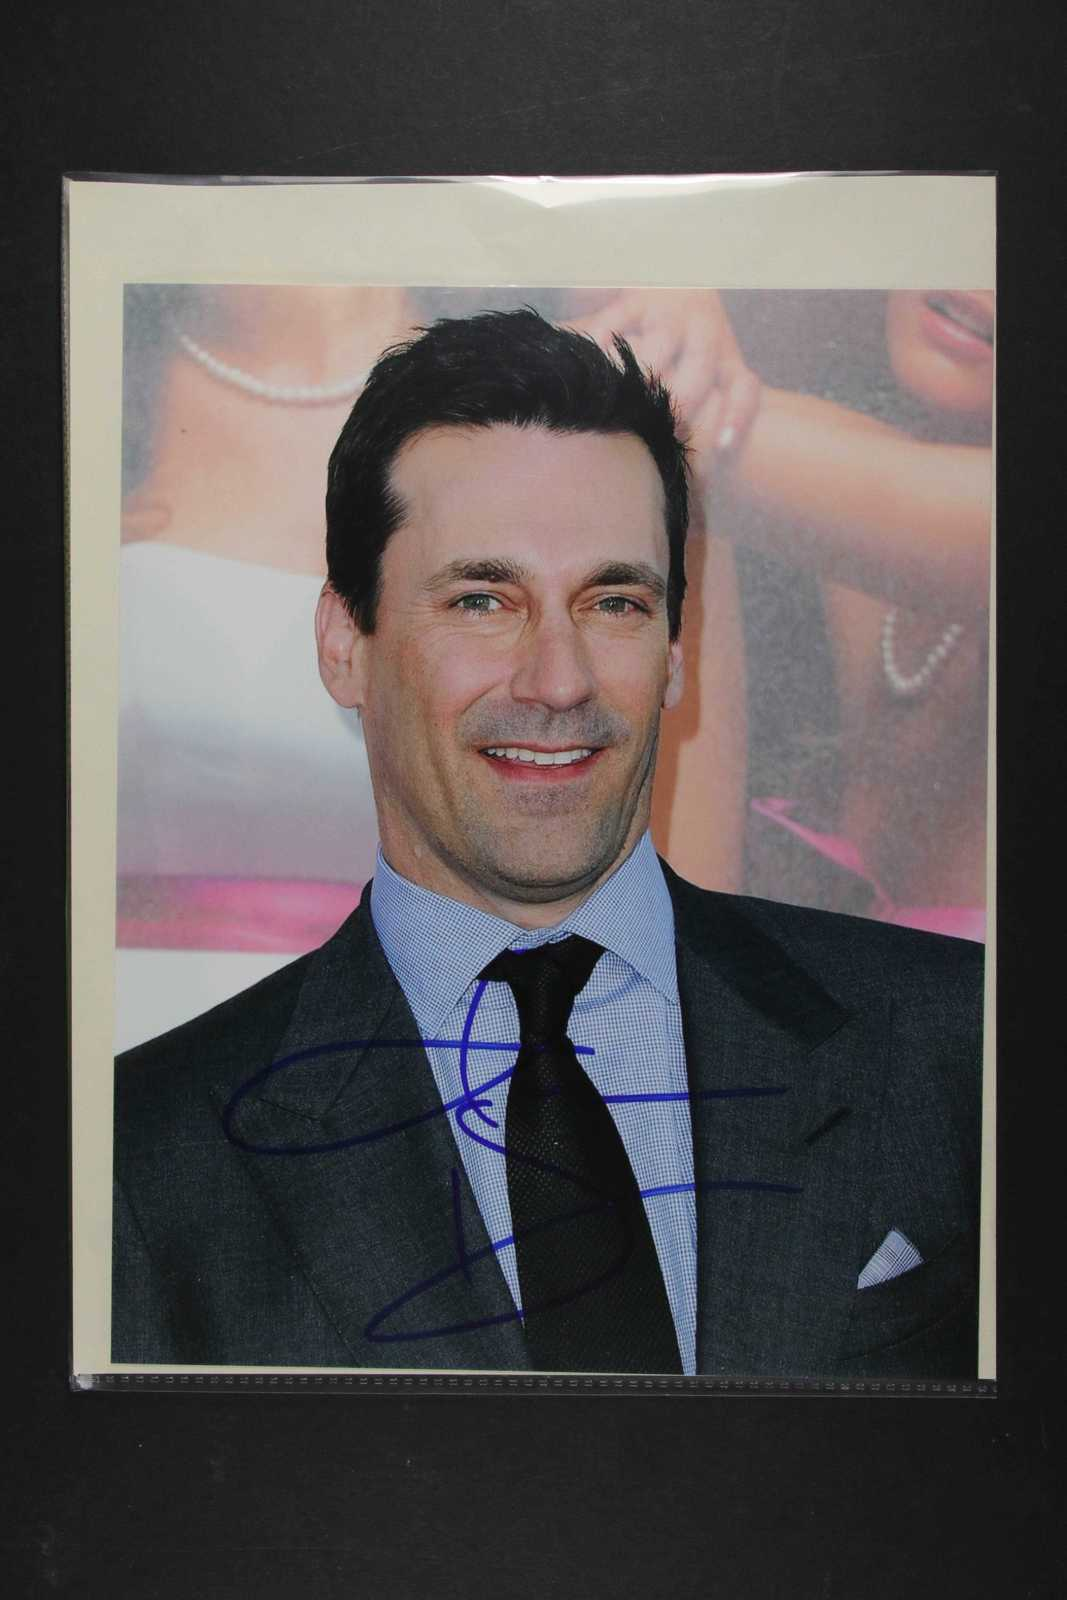 Primary image for Jon Hamm Signed Autographed Glossy 8x10 Photo